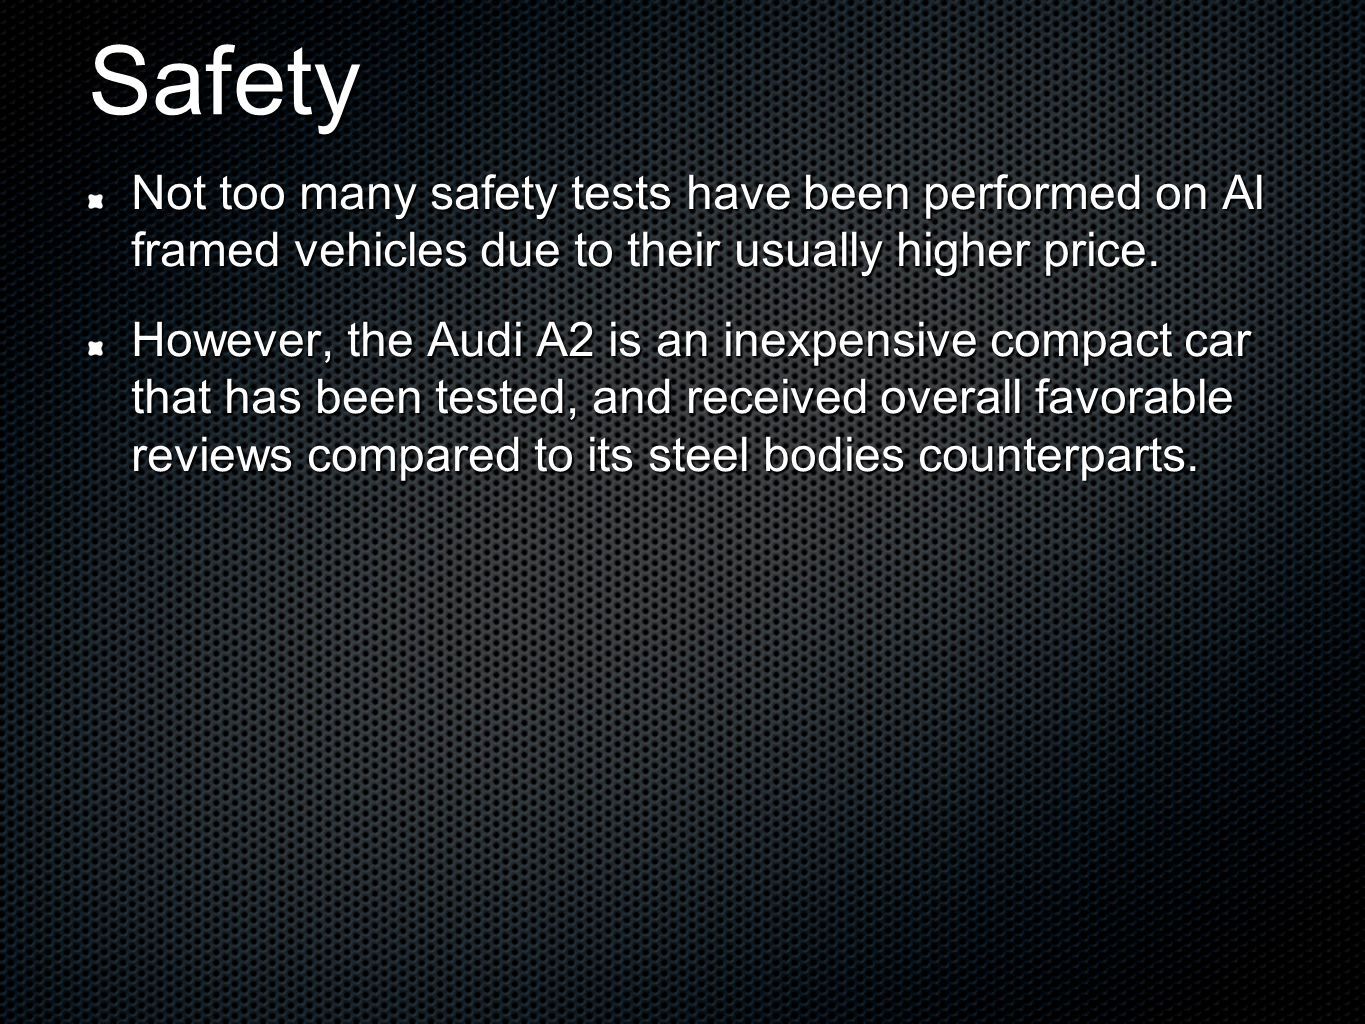 Safety Not too many safety tests have been performed on Al framed vehicles due to their usually higher price.